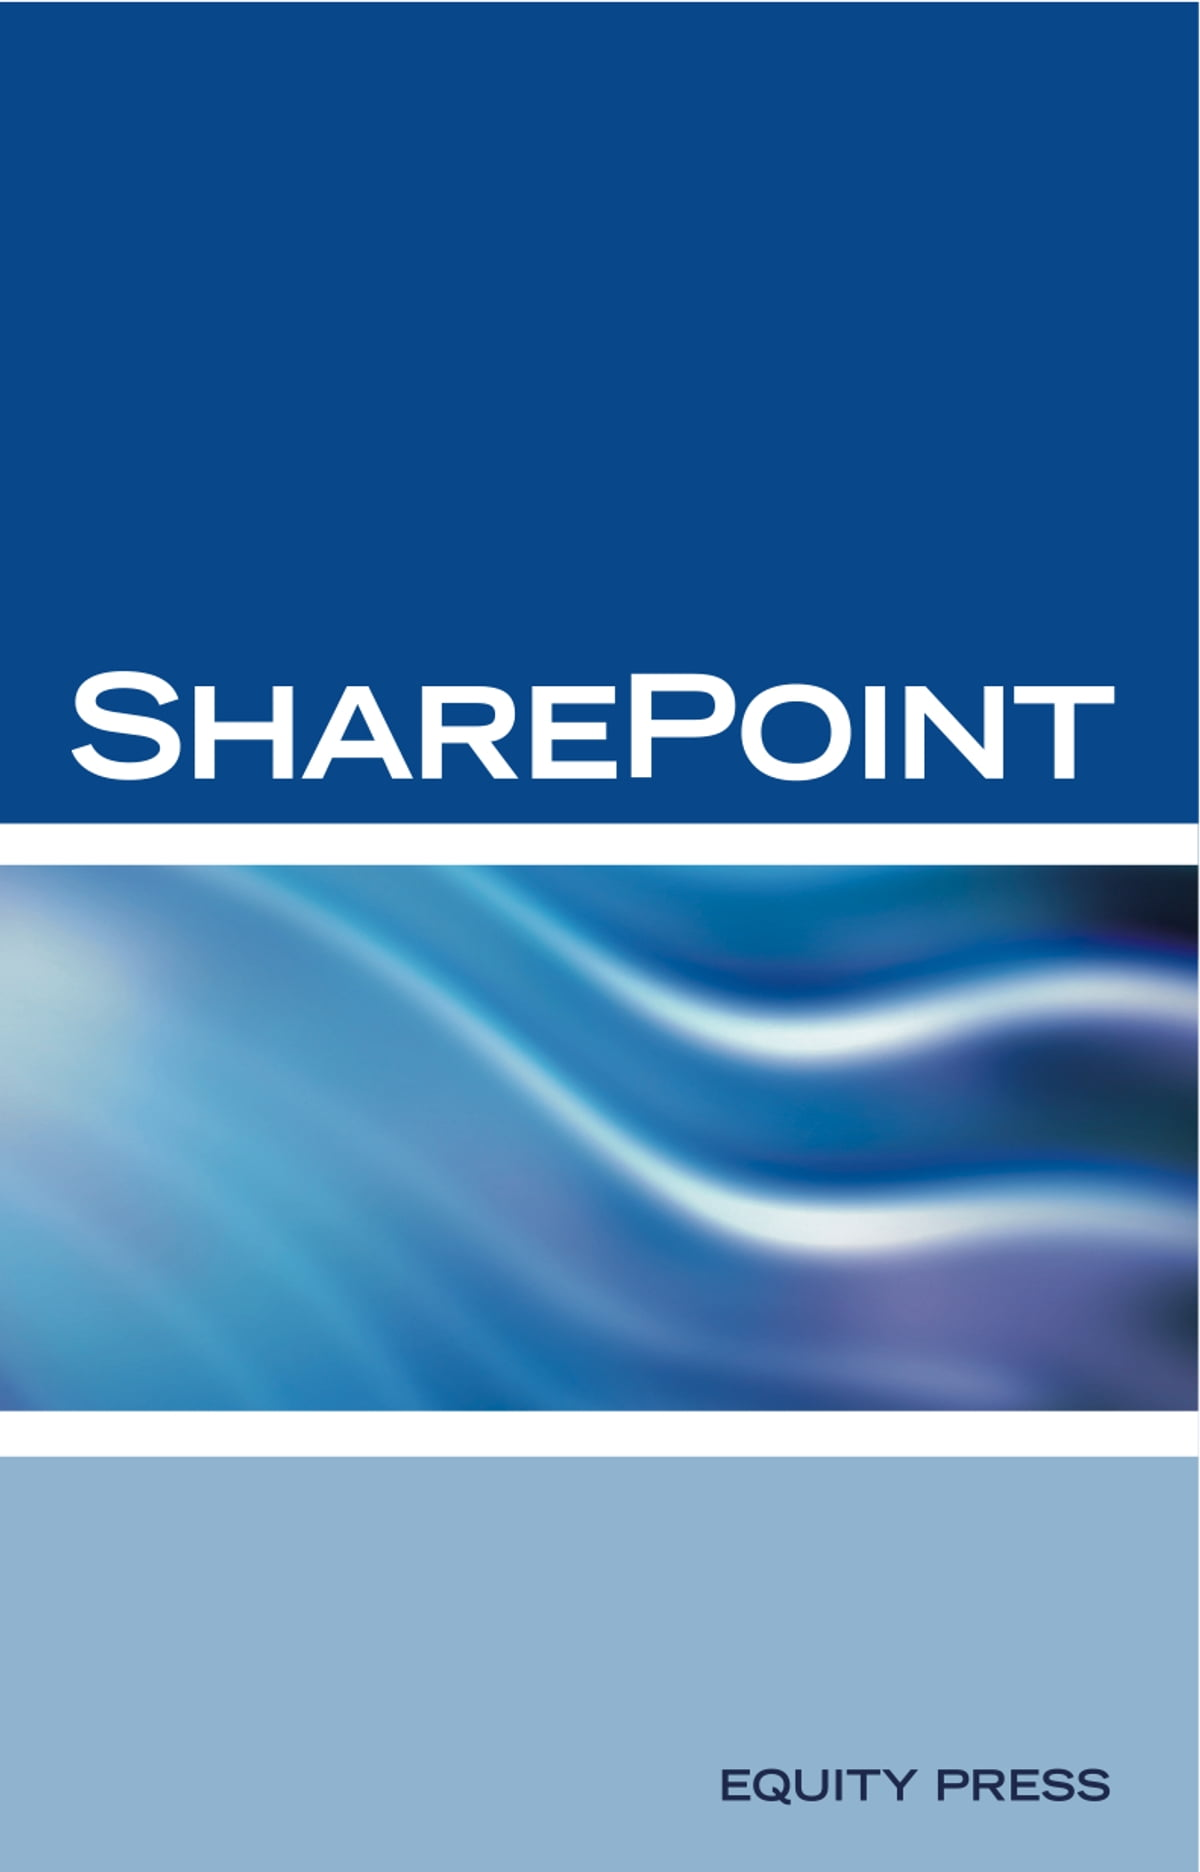 Microsoft Sharepoint Interview Questions: Share Point Certification Review  ebook by Equity Press - Rakuten Kobo